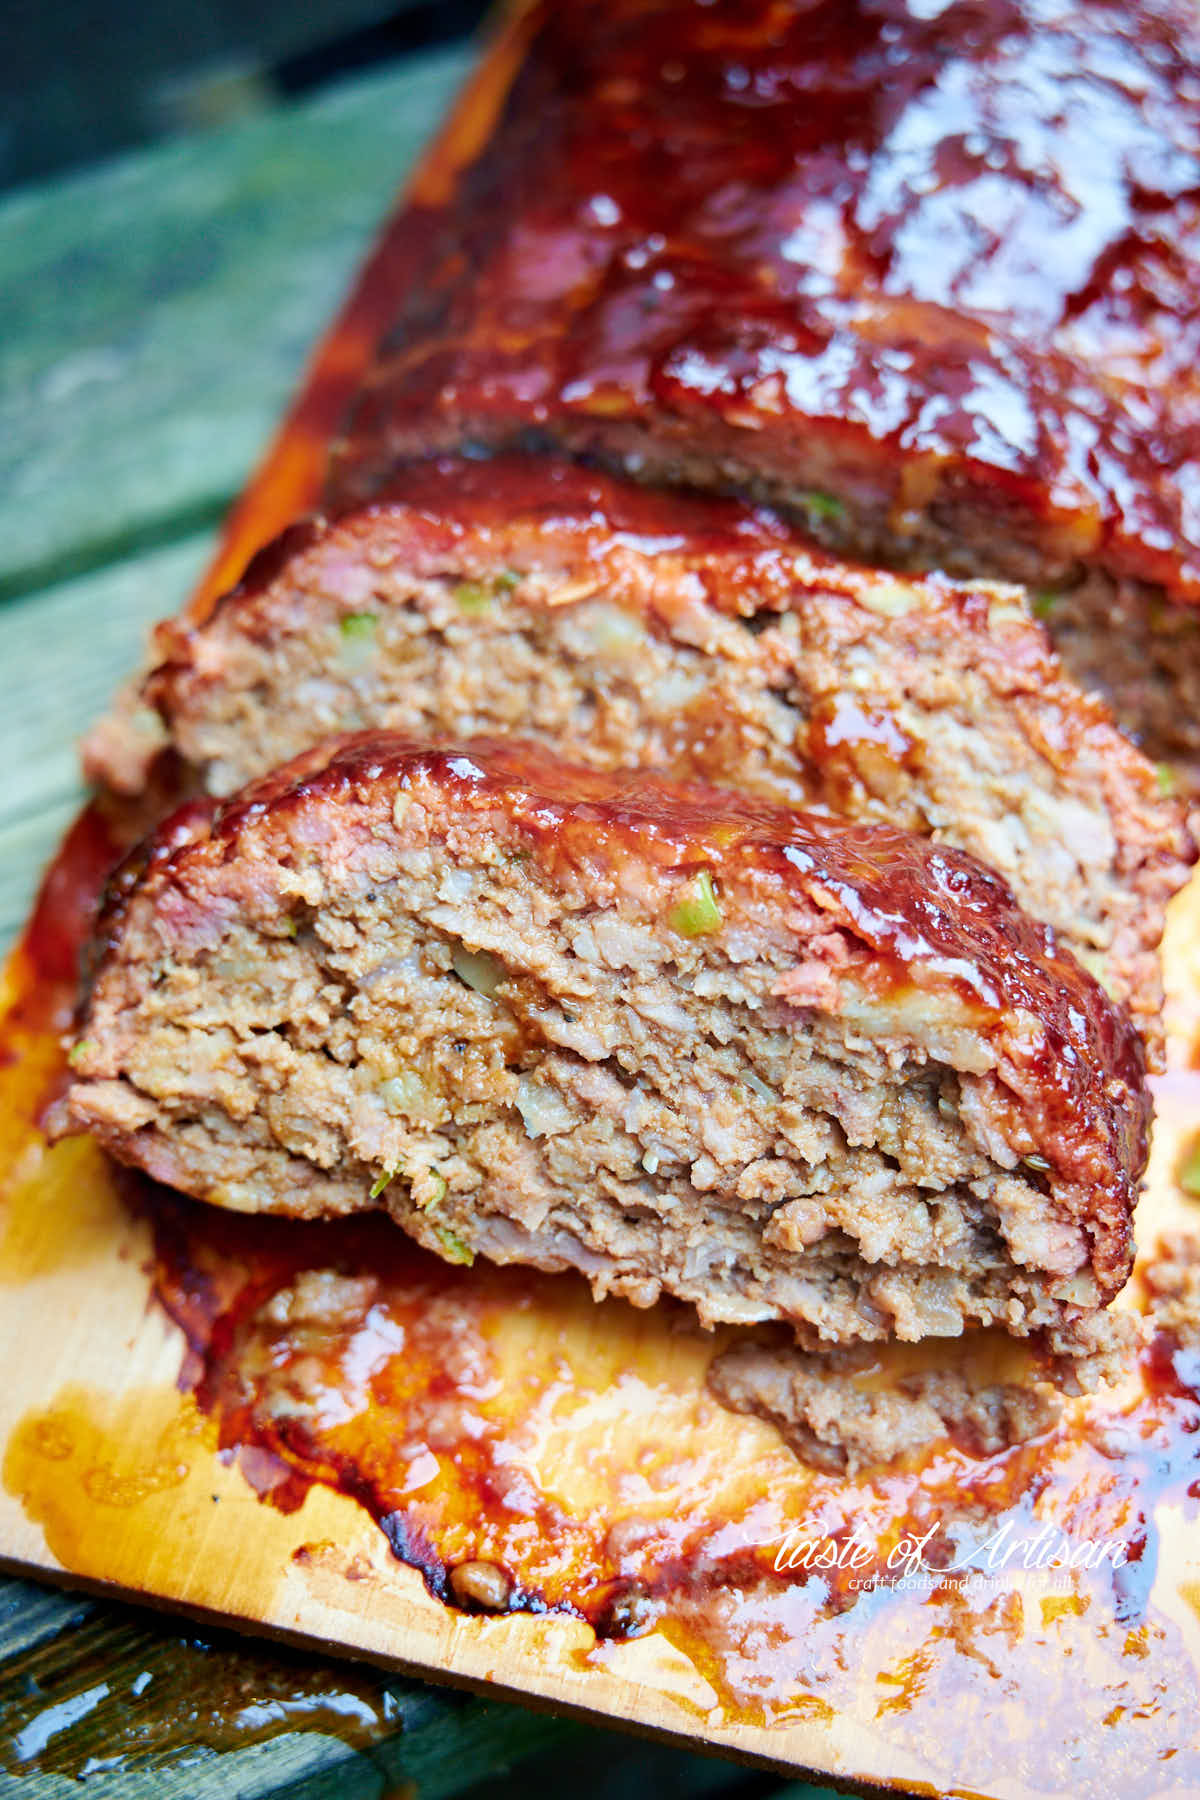 Slice meatloaf on a wooden board.